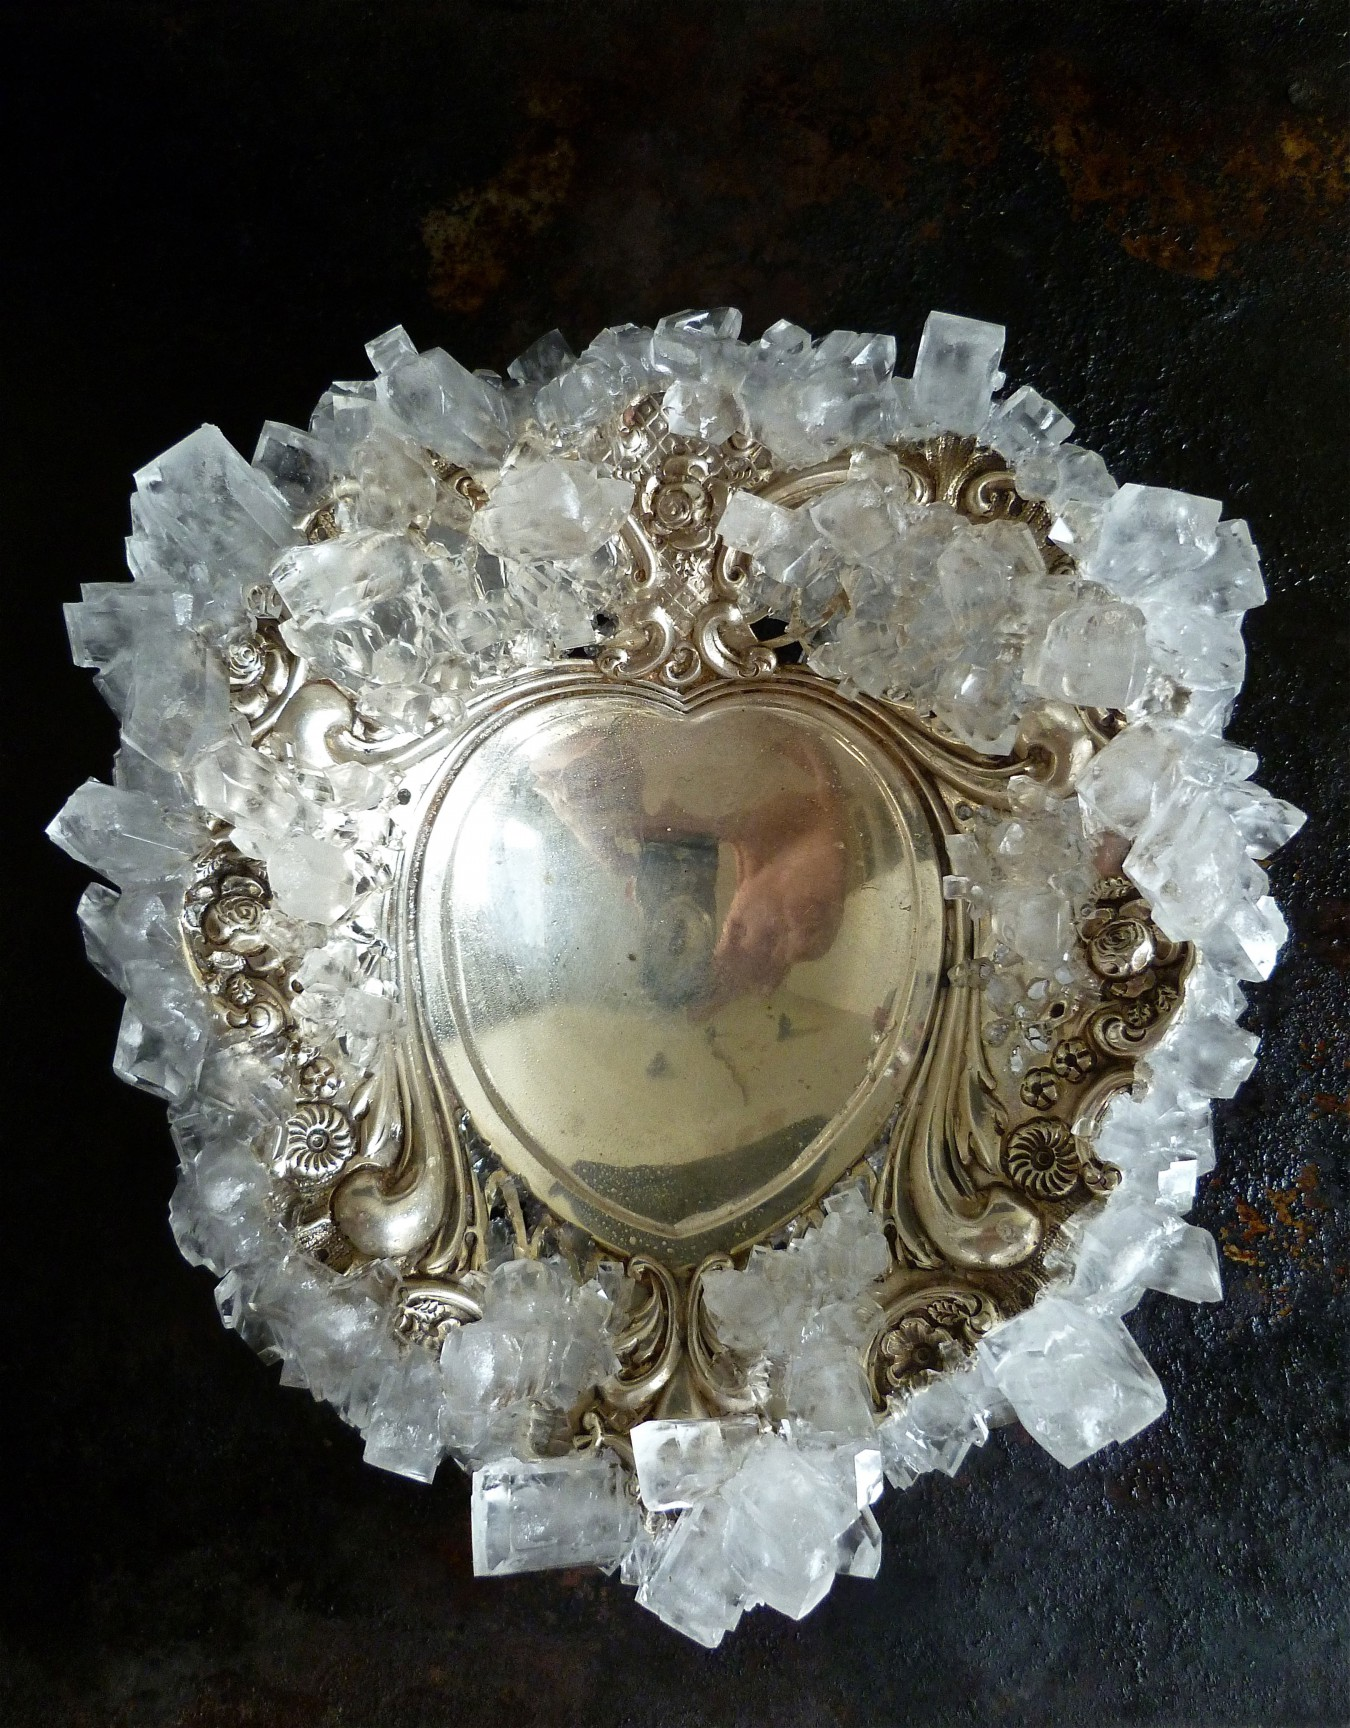 Image of a solid silver heart shaped bonboniere dish made sweeter by growing sugar crystals around and through the edge of the piece